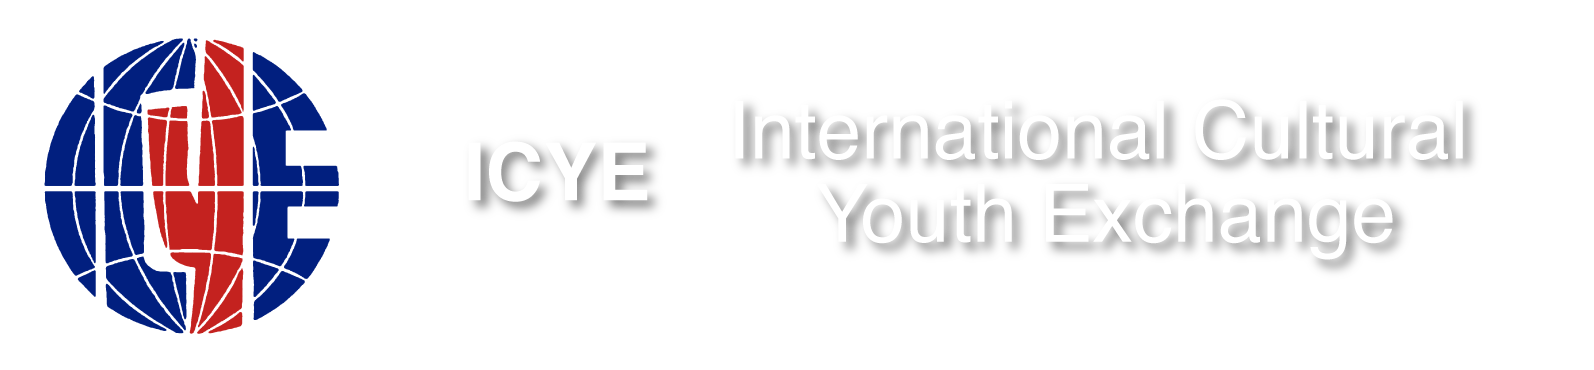 International Cultural Youth Exchange